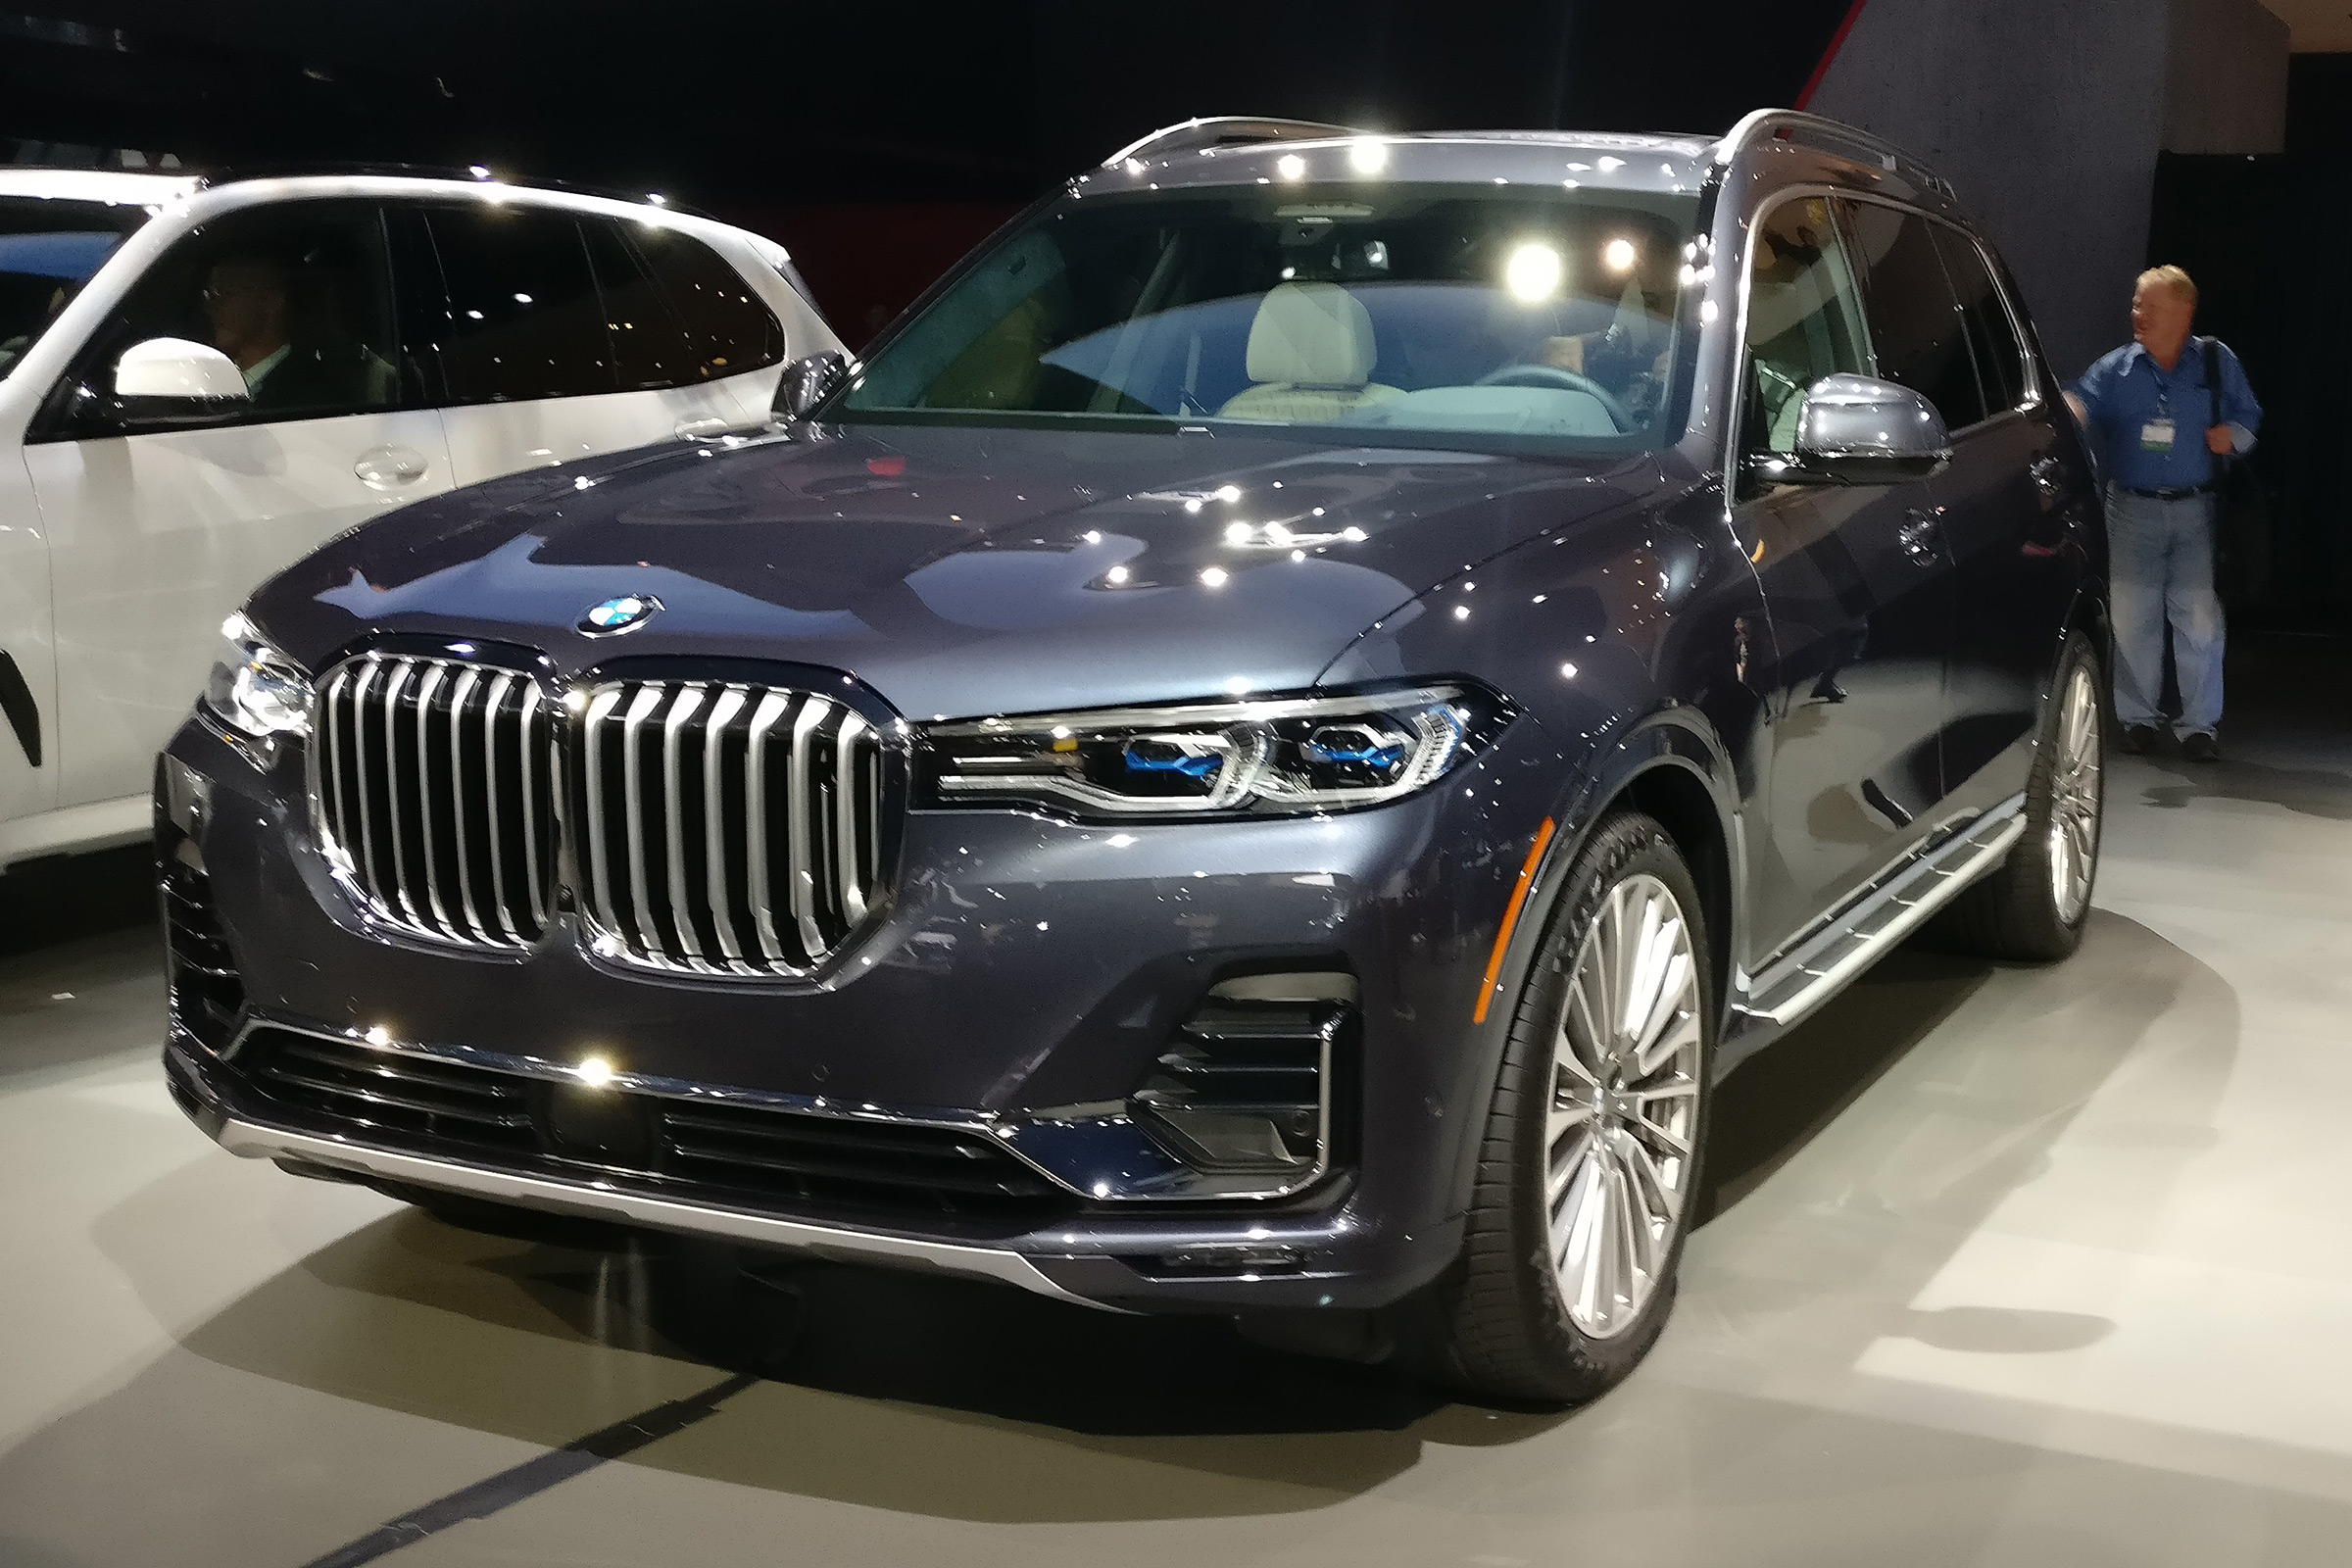 92 A 2020 BMW X7 Suv Series Engine